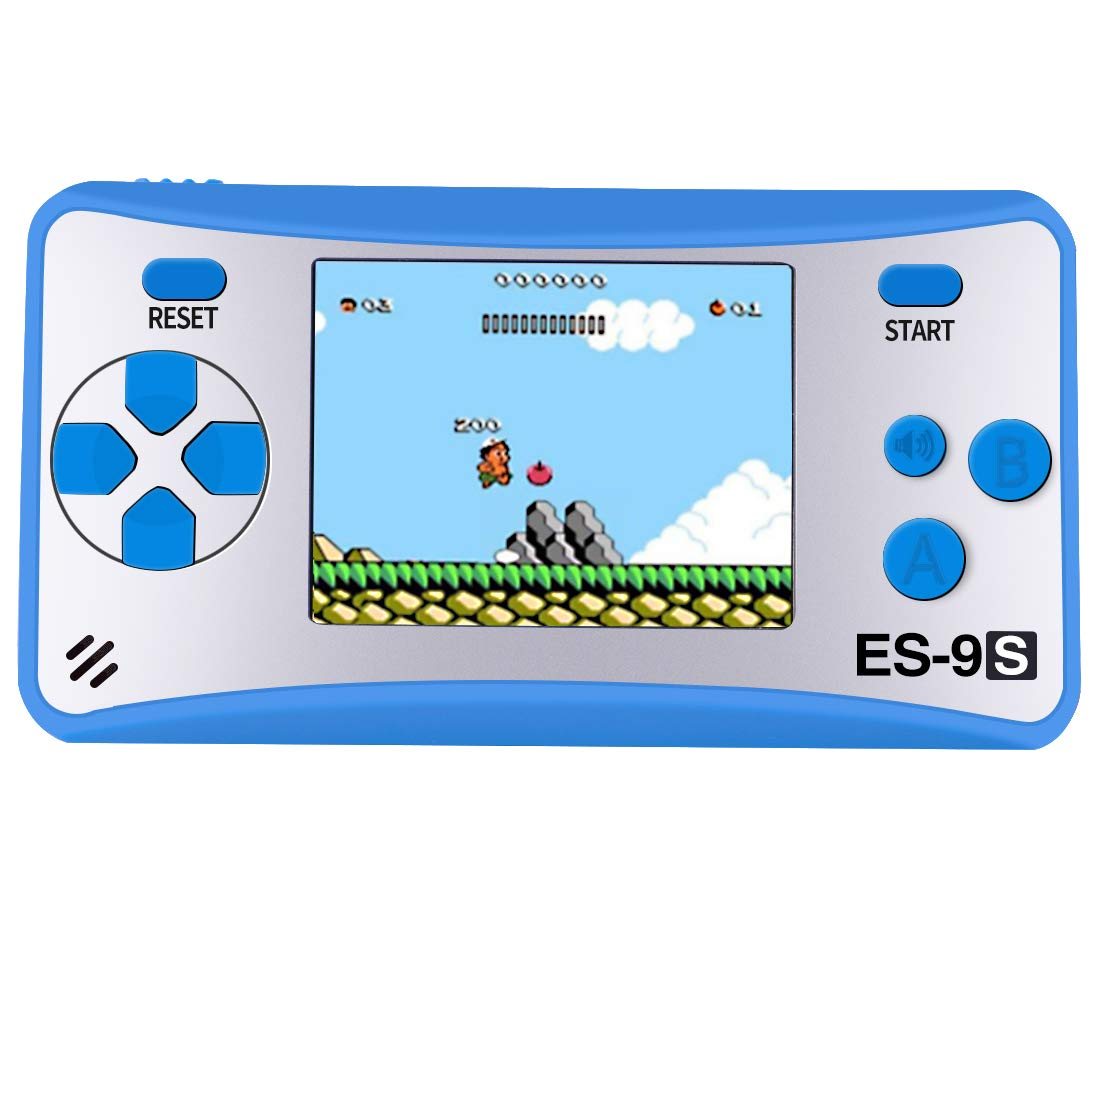 Kids Handheld Game Console Retro Video Game Player Portable Arcade Gaming System Birthday Gift for Children Travel Recreation 2.5'' Color LCD Screen 16 Bit 168 Classic Games(Blue Silver)